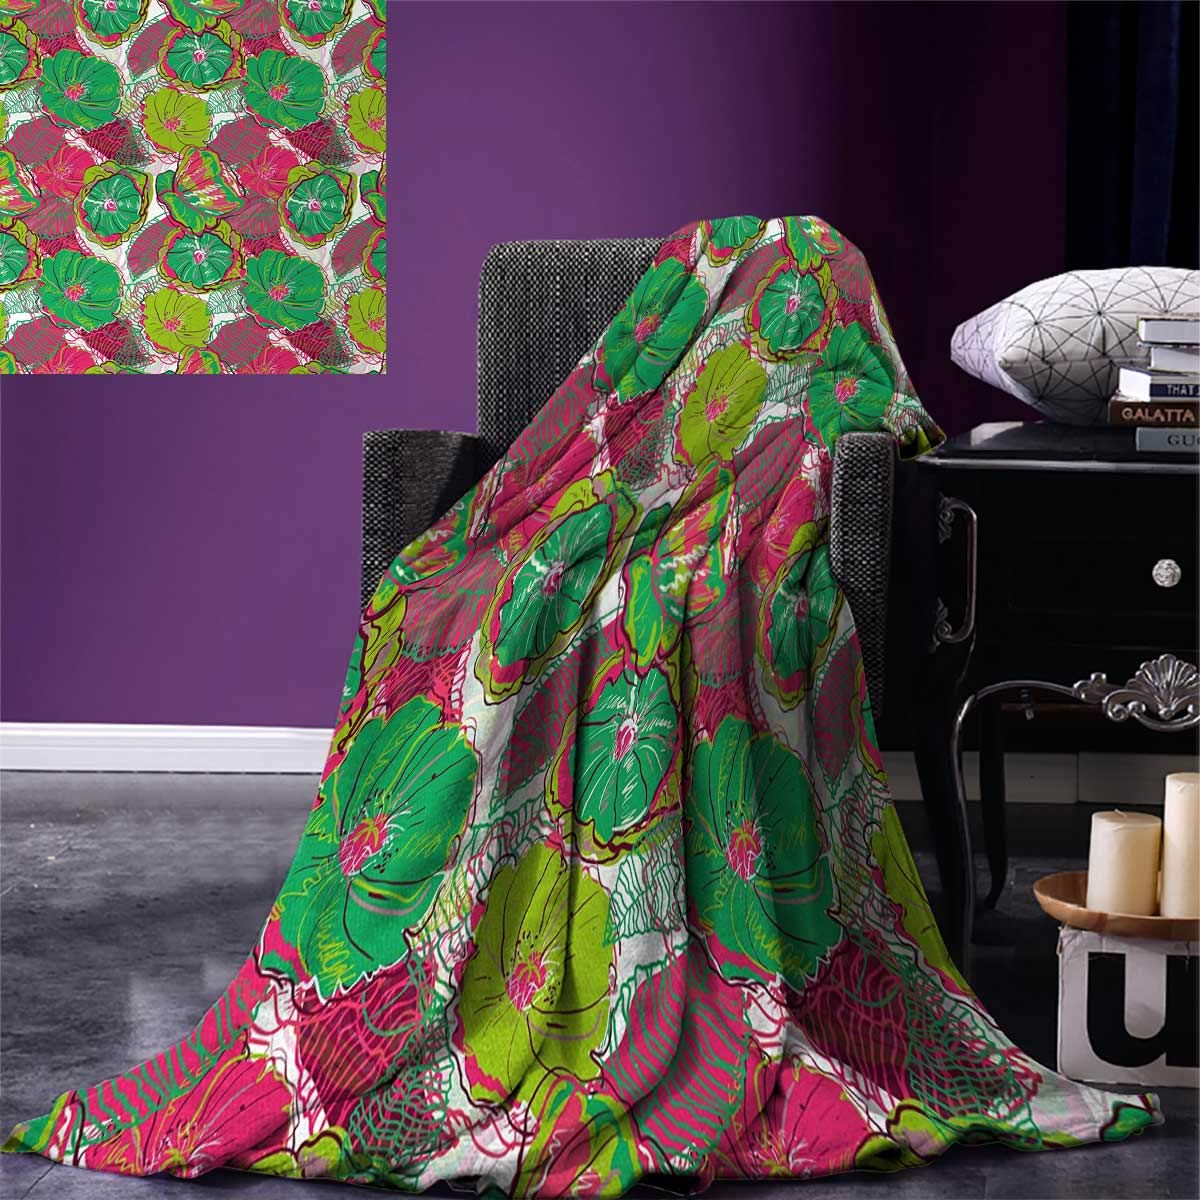 Floral Digital Printing Blanket Tropical Blossom Caribbean in Exotic Tones Hyacinth Hippie Print Summer Quilt Comforter 80''x60'' Jade and Lime Green Hot Pink